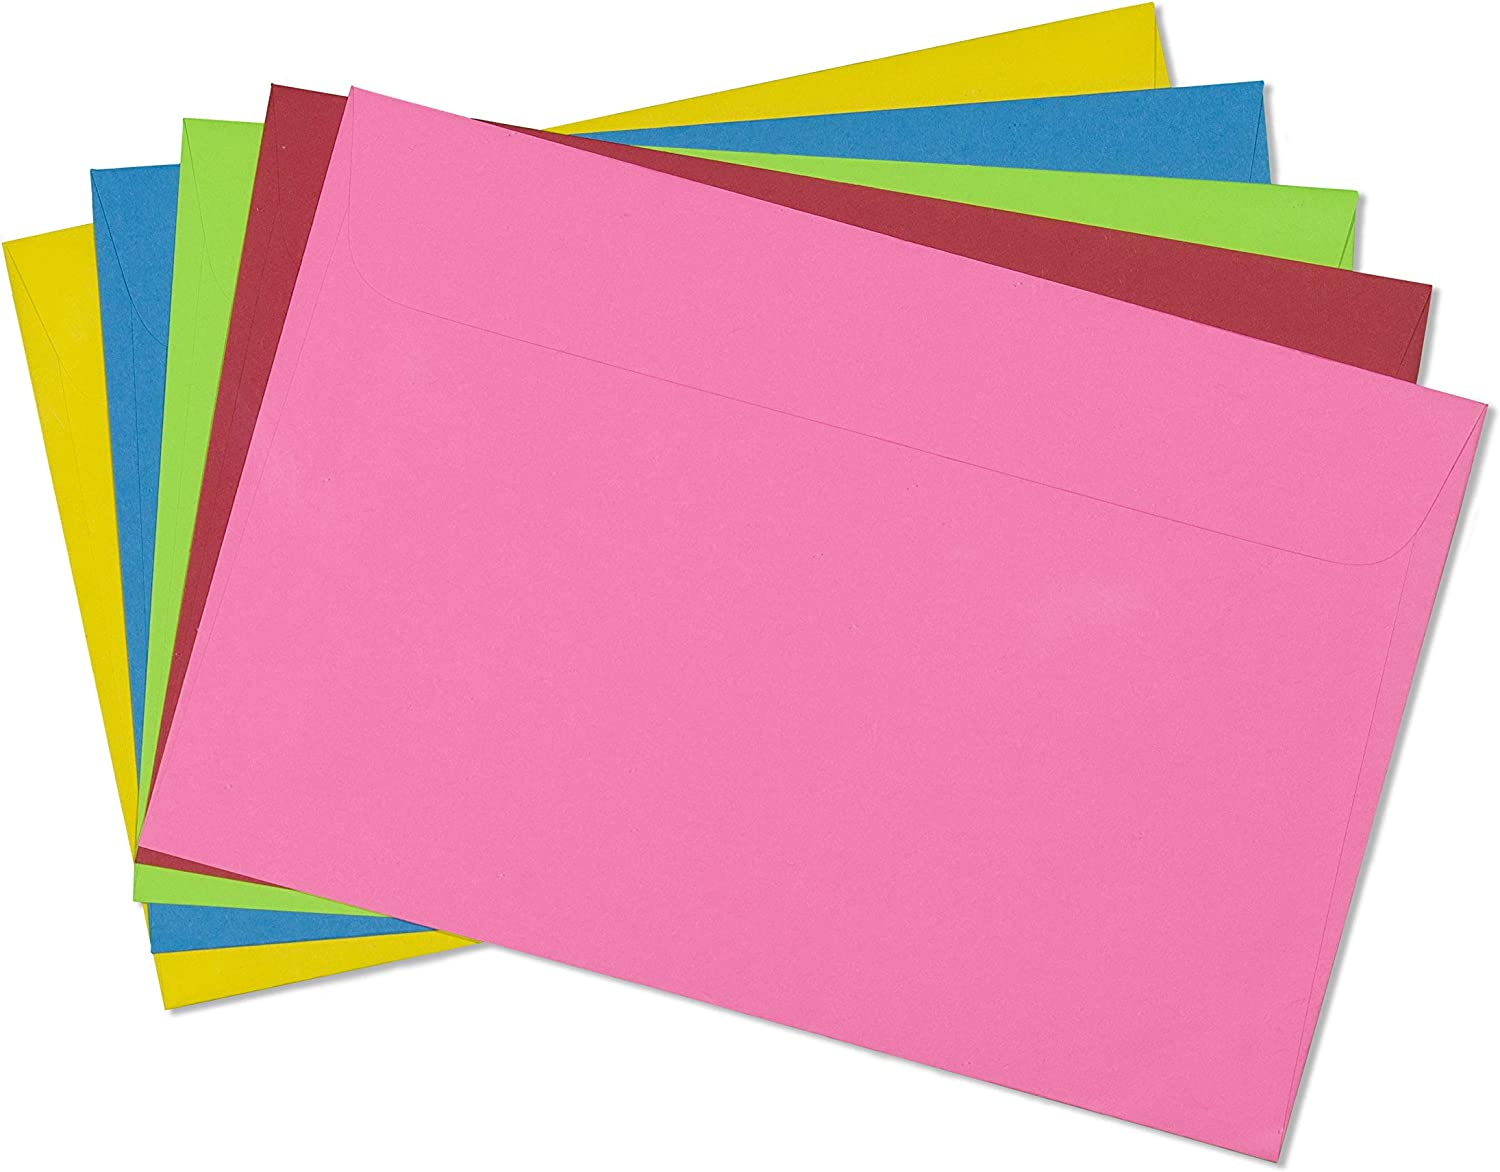 9x12 Envelope Color Blank Open Side Envelopes-15 Pack (Mixed Pack) : Office Products